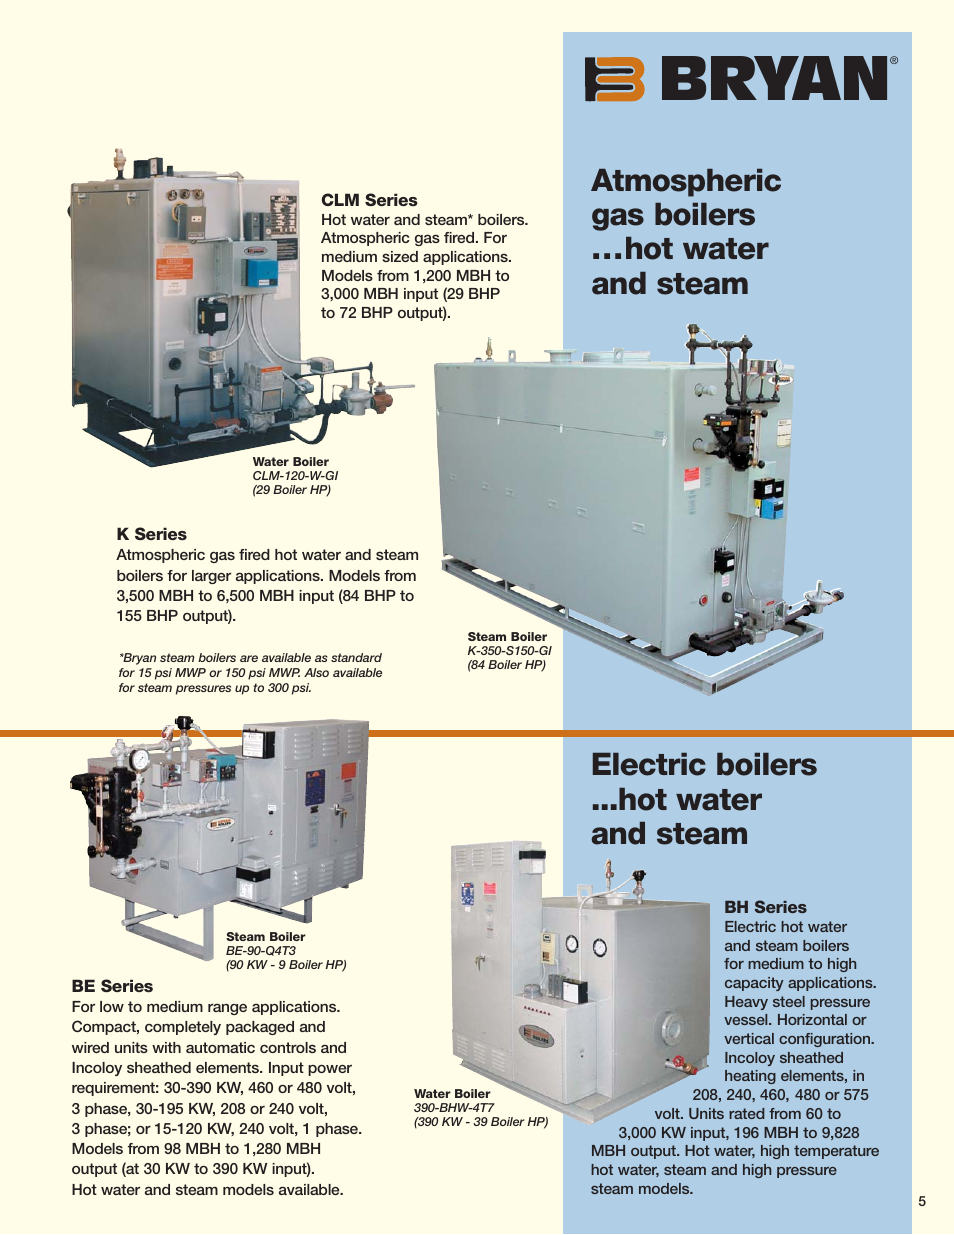 Bryan, Atmospheric gas boilers ...hot water and steam, Electric ...